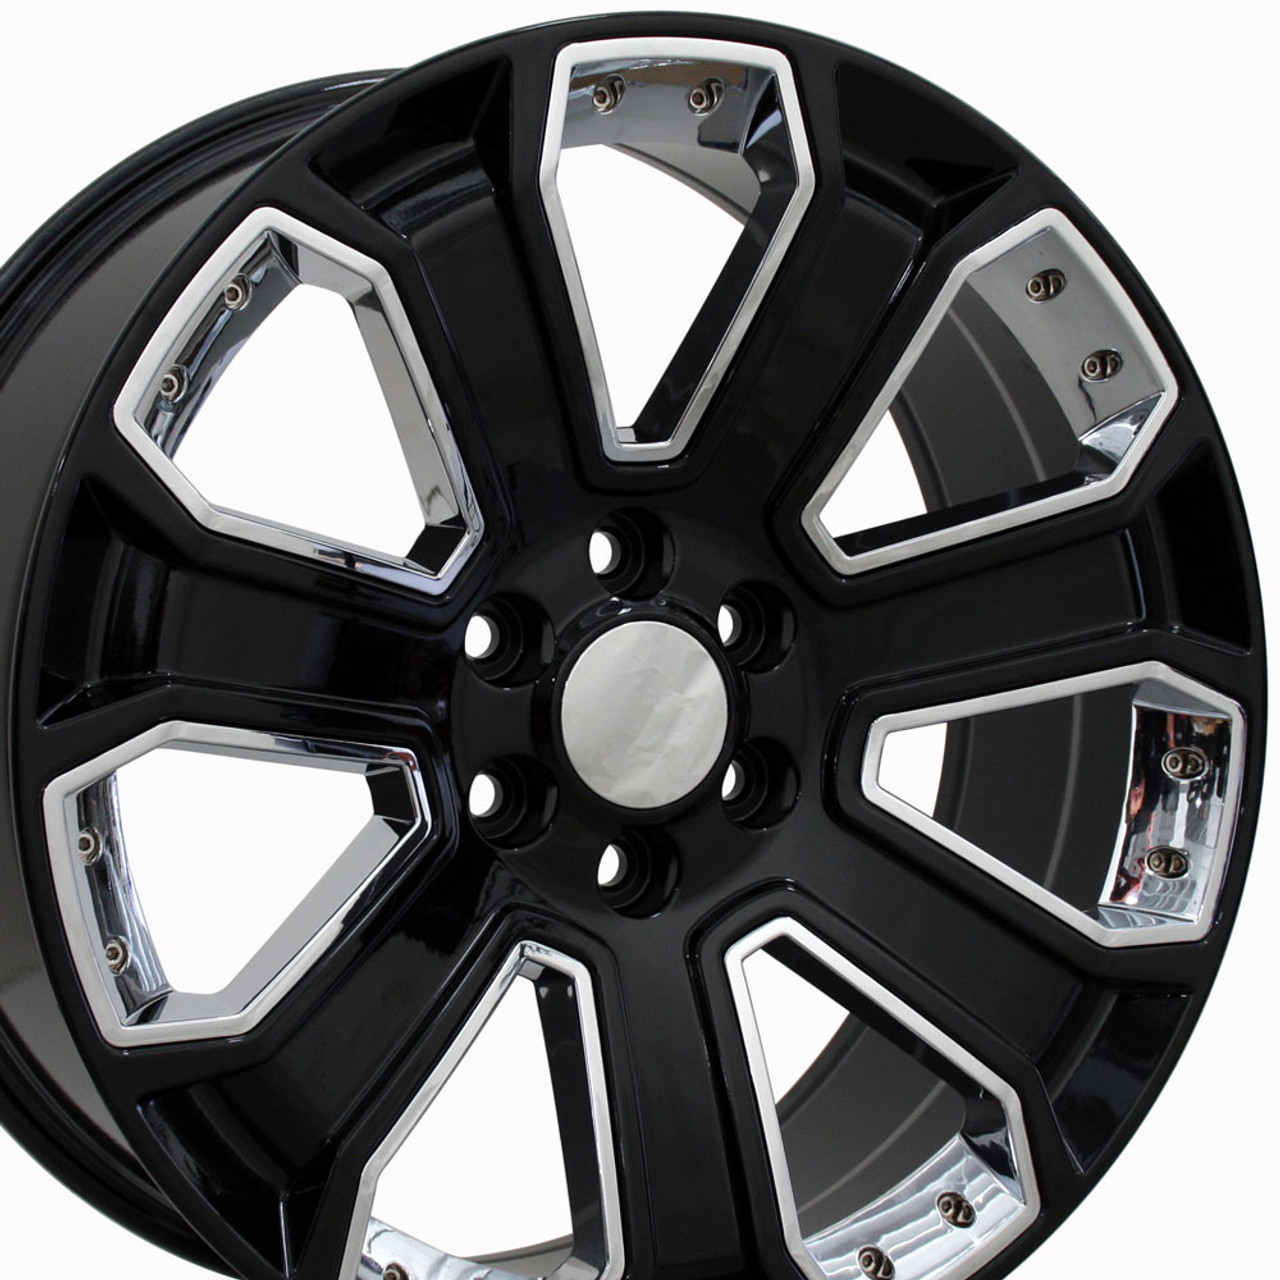 All Chevy black chevy rims : 22